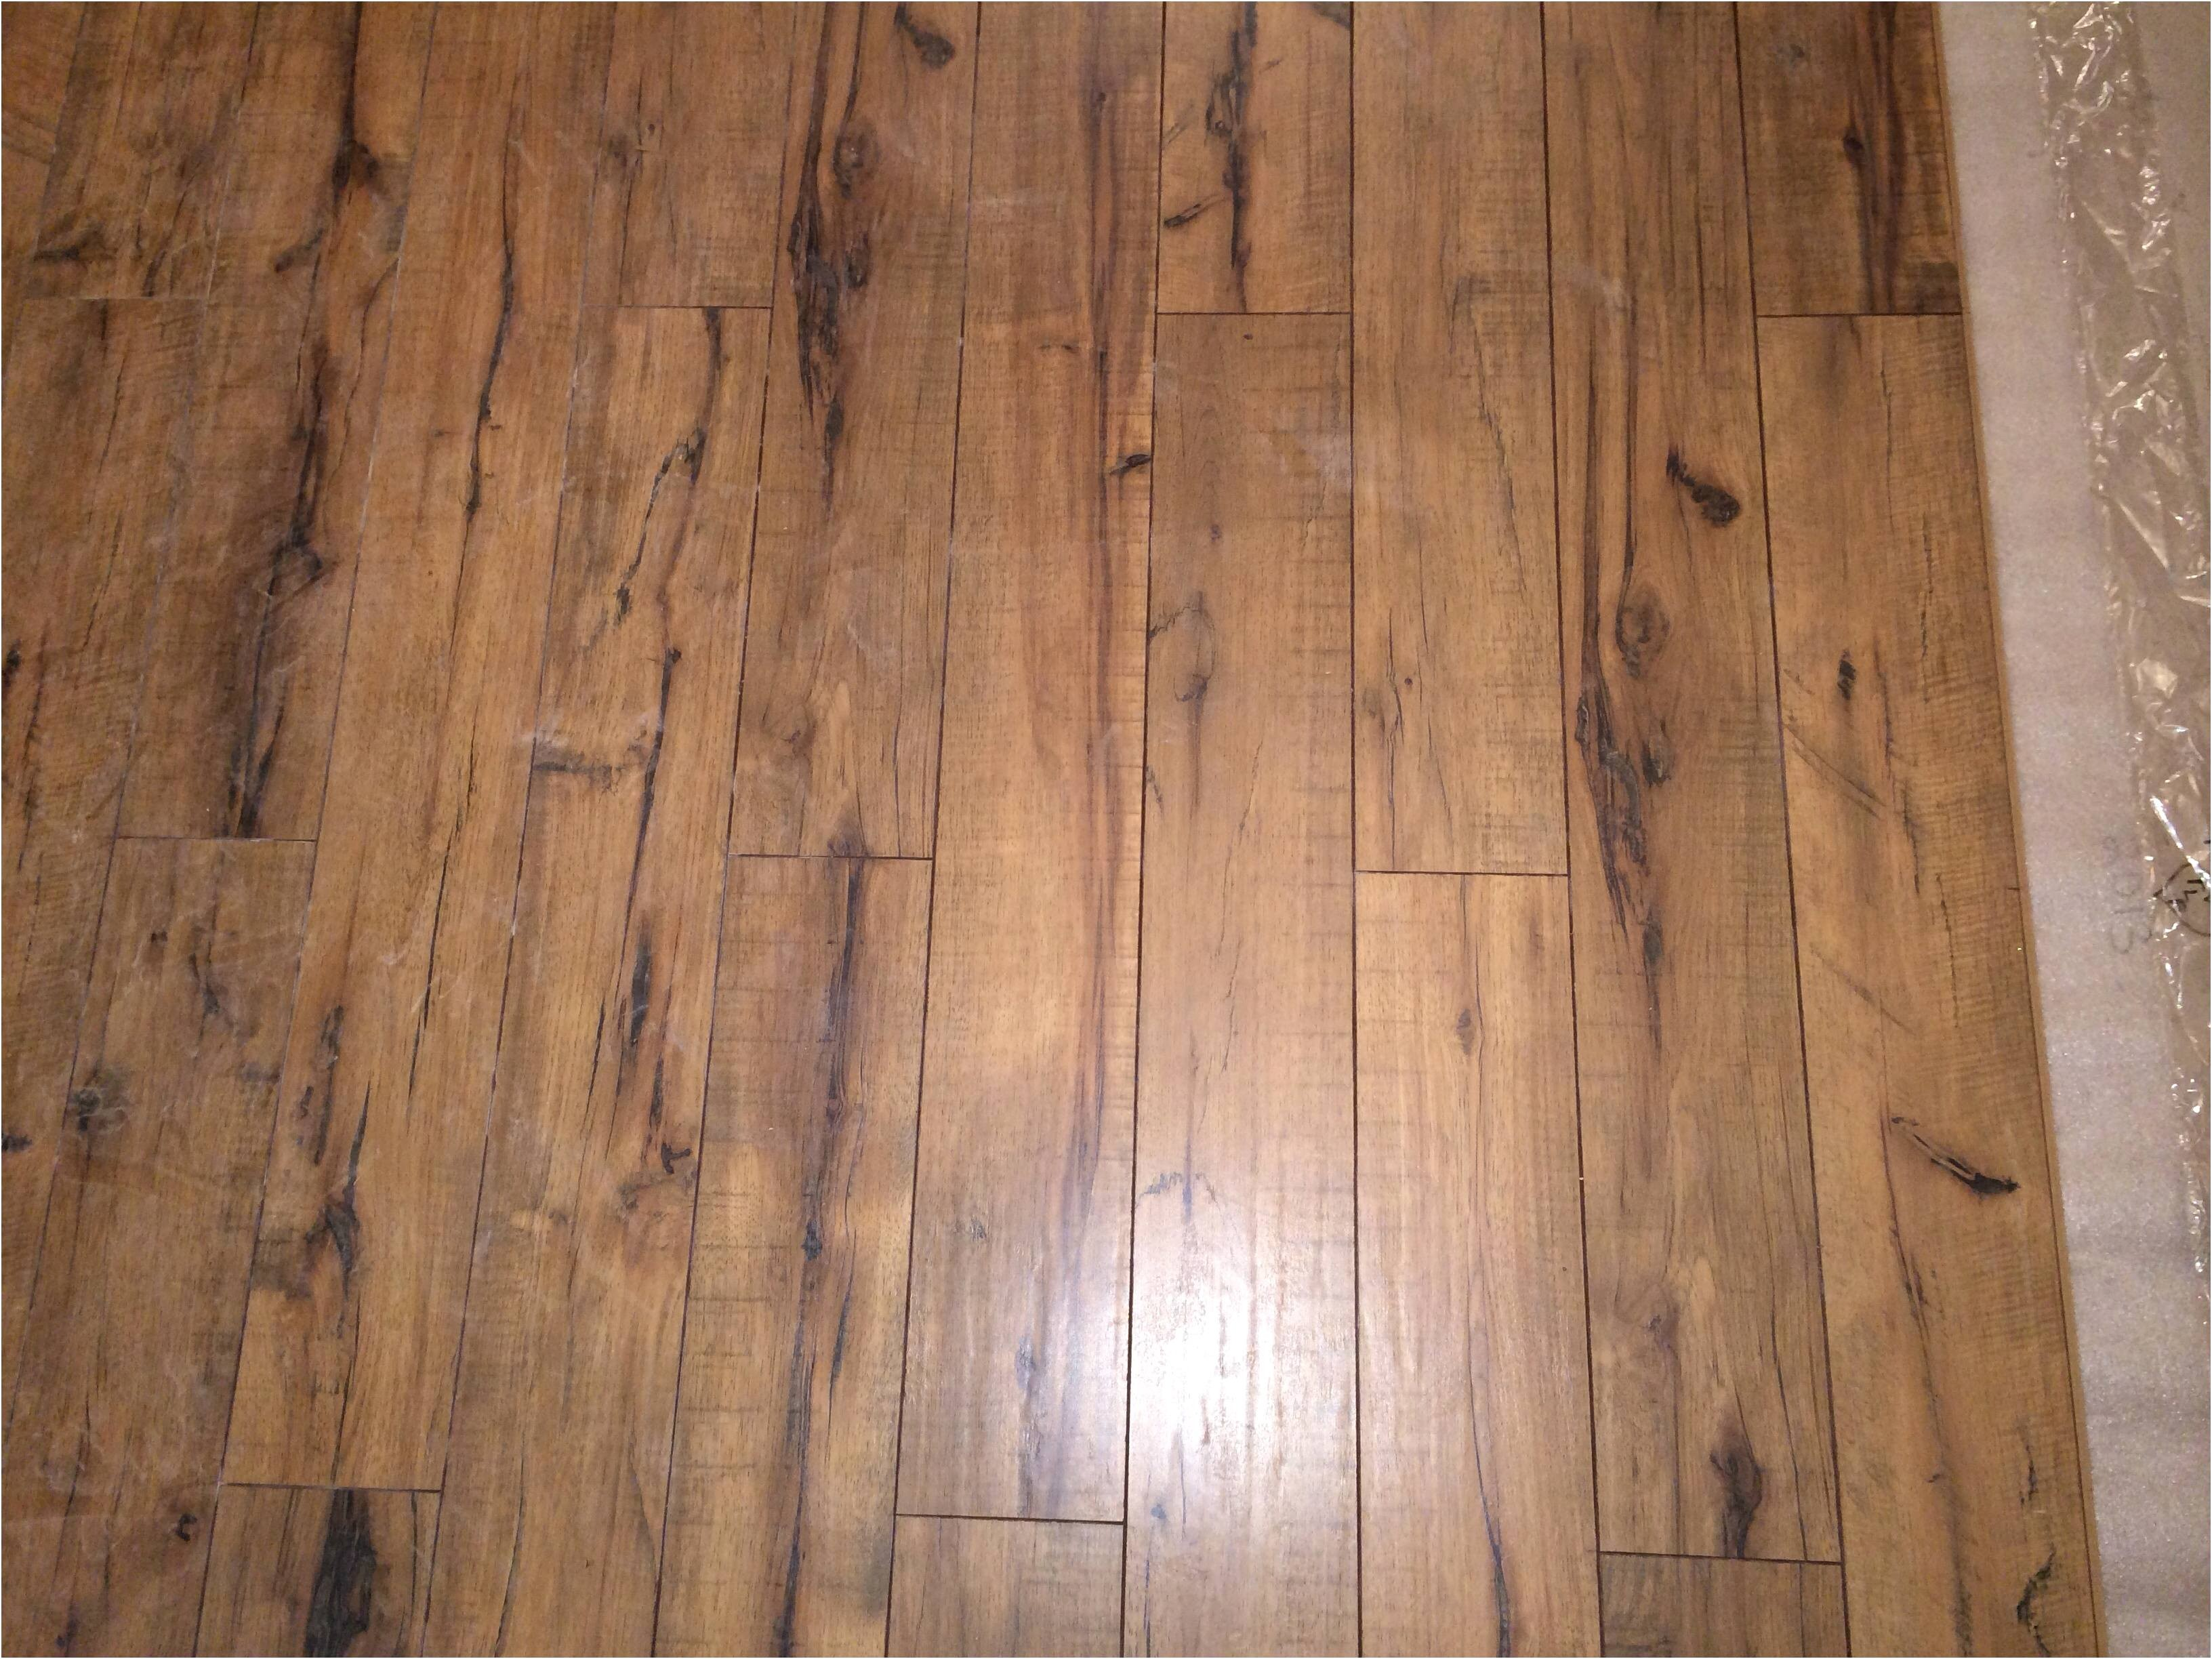 hickory flooring pros and cons best of prefinished hardwood flooring pros and cons eucalyptus hardwood